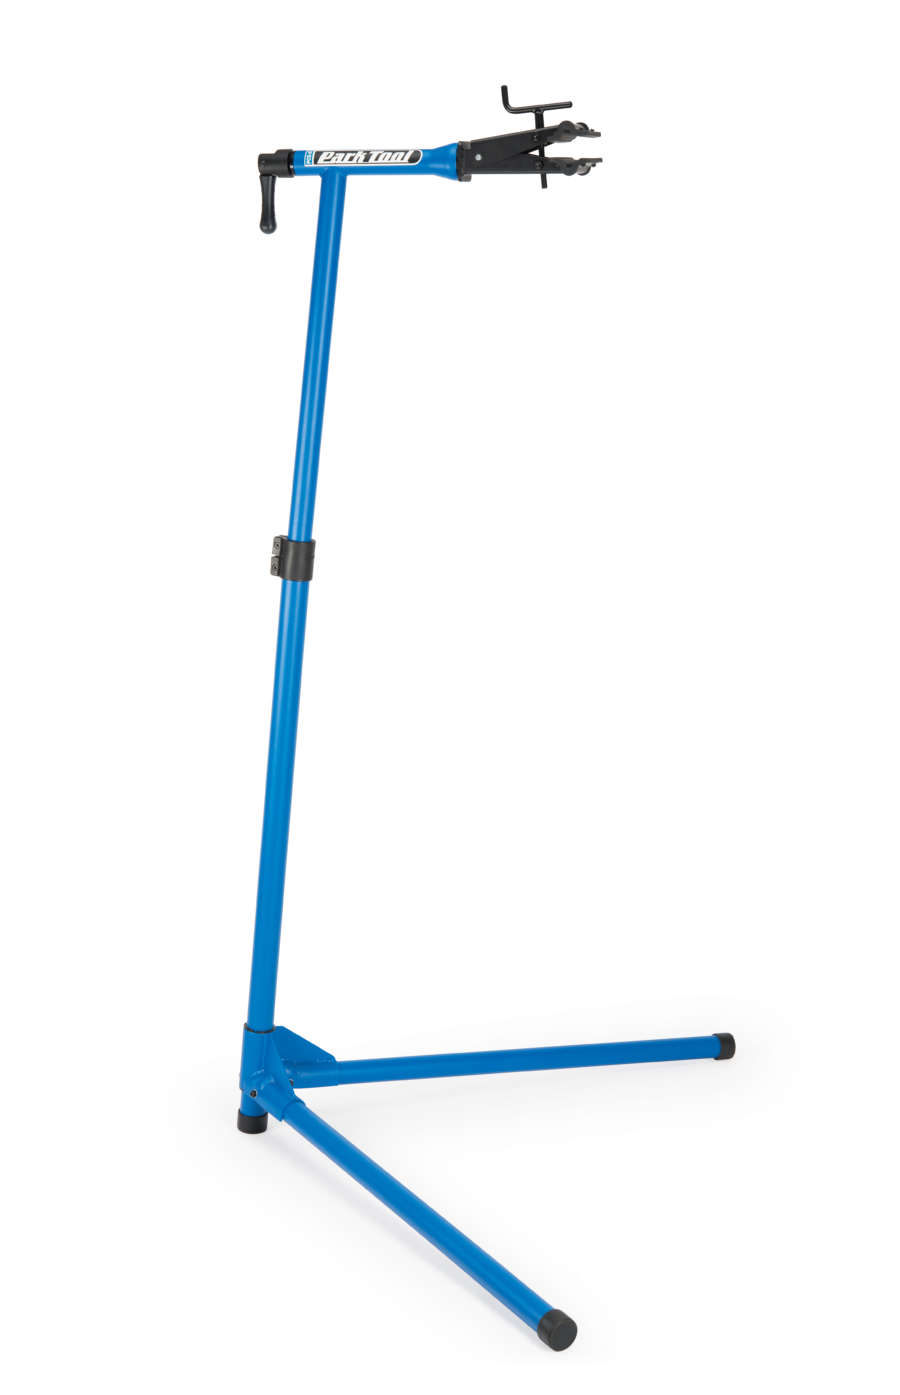 The Park Tool PCS-9, Home Mechanic Repair Stand, enlarged